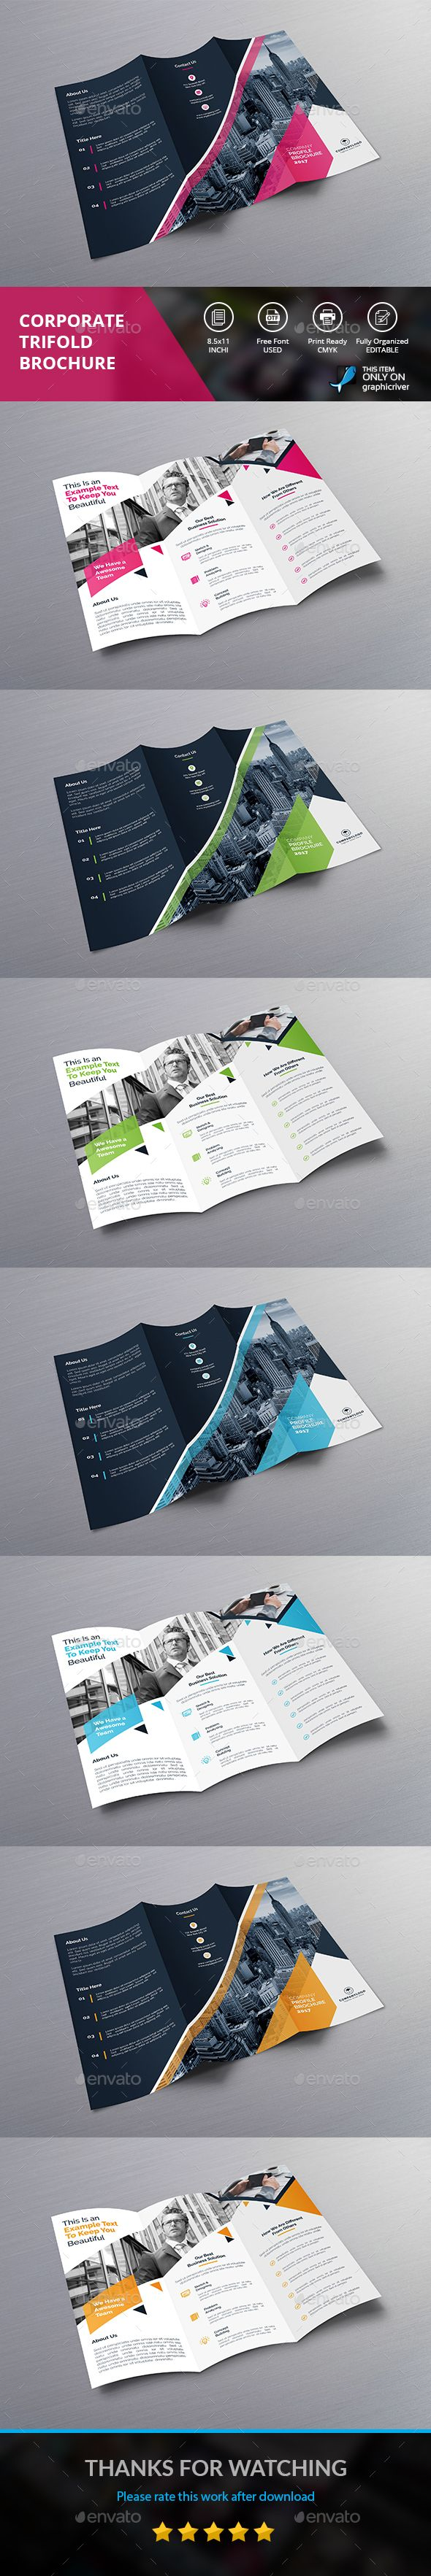 TRI FOLD BROCHURE Corporate Brochures Download here s graphicriver